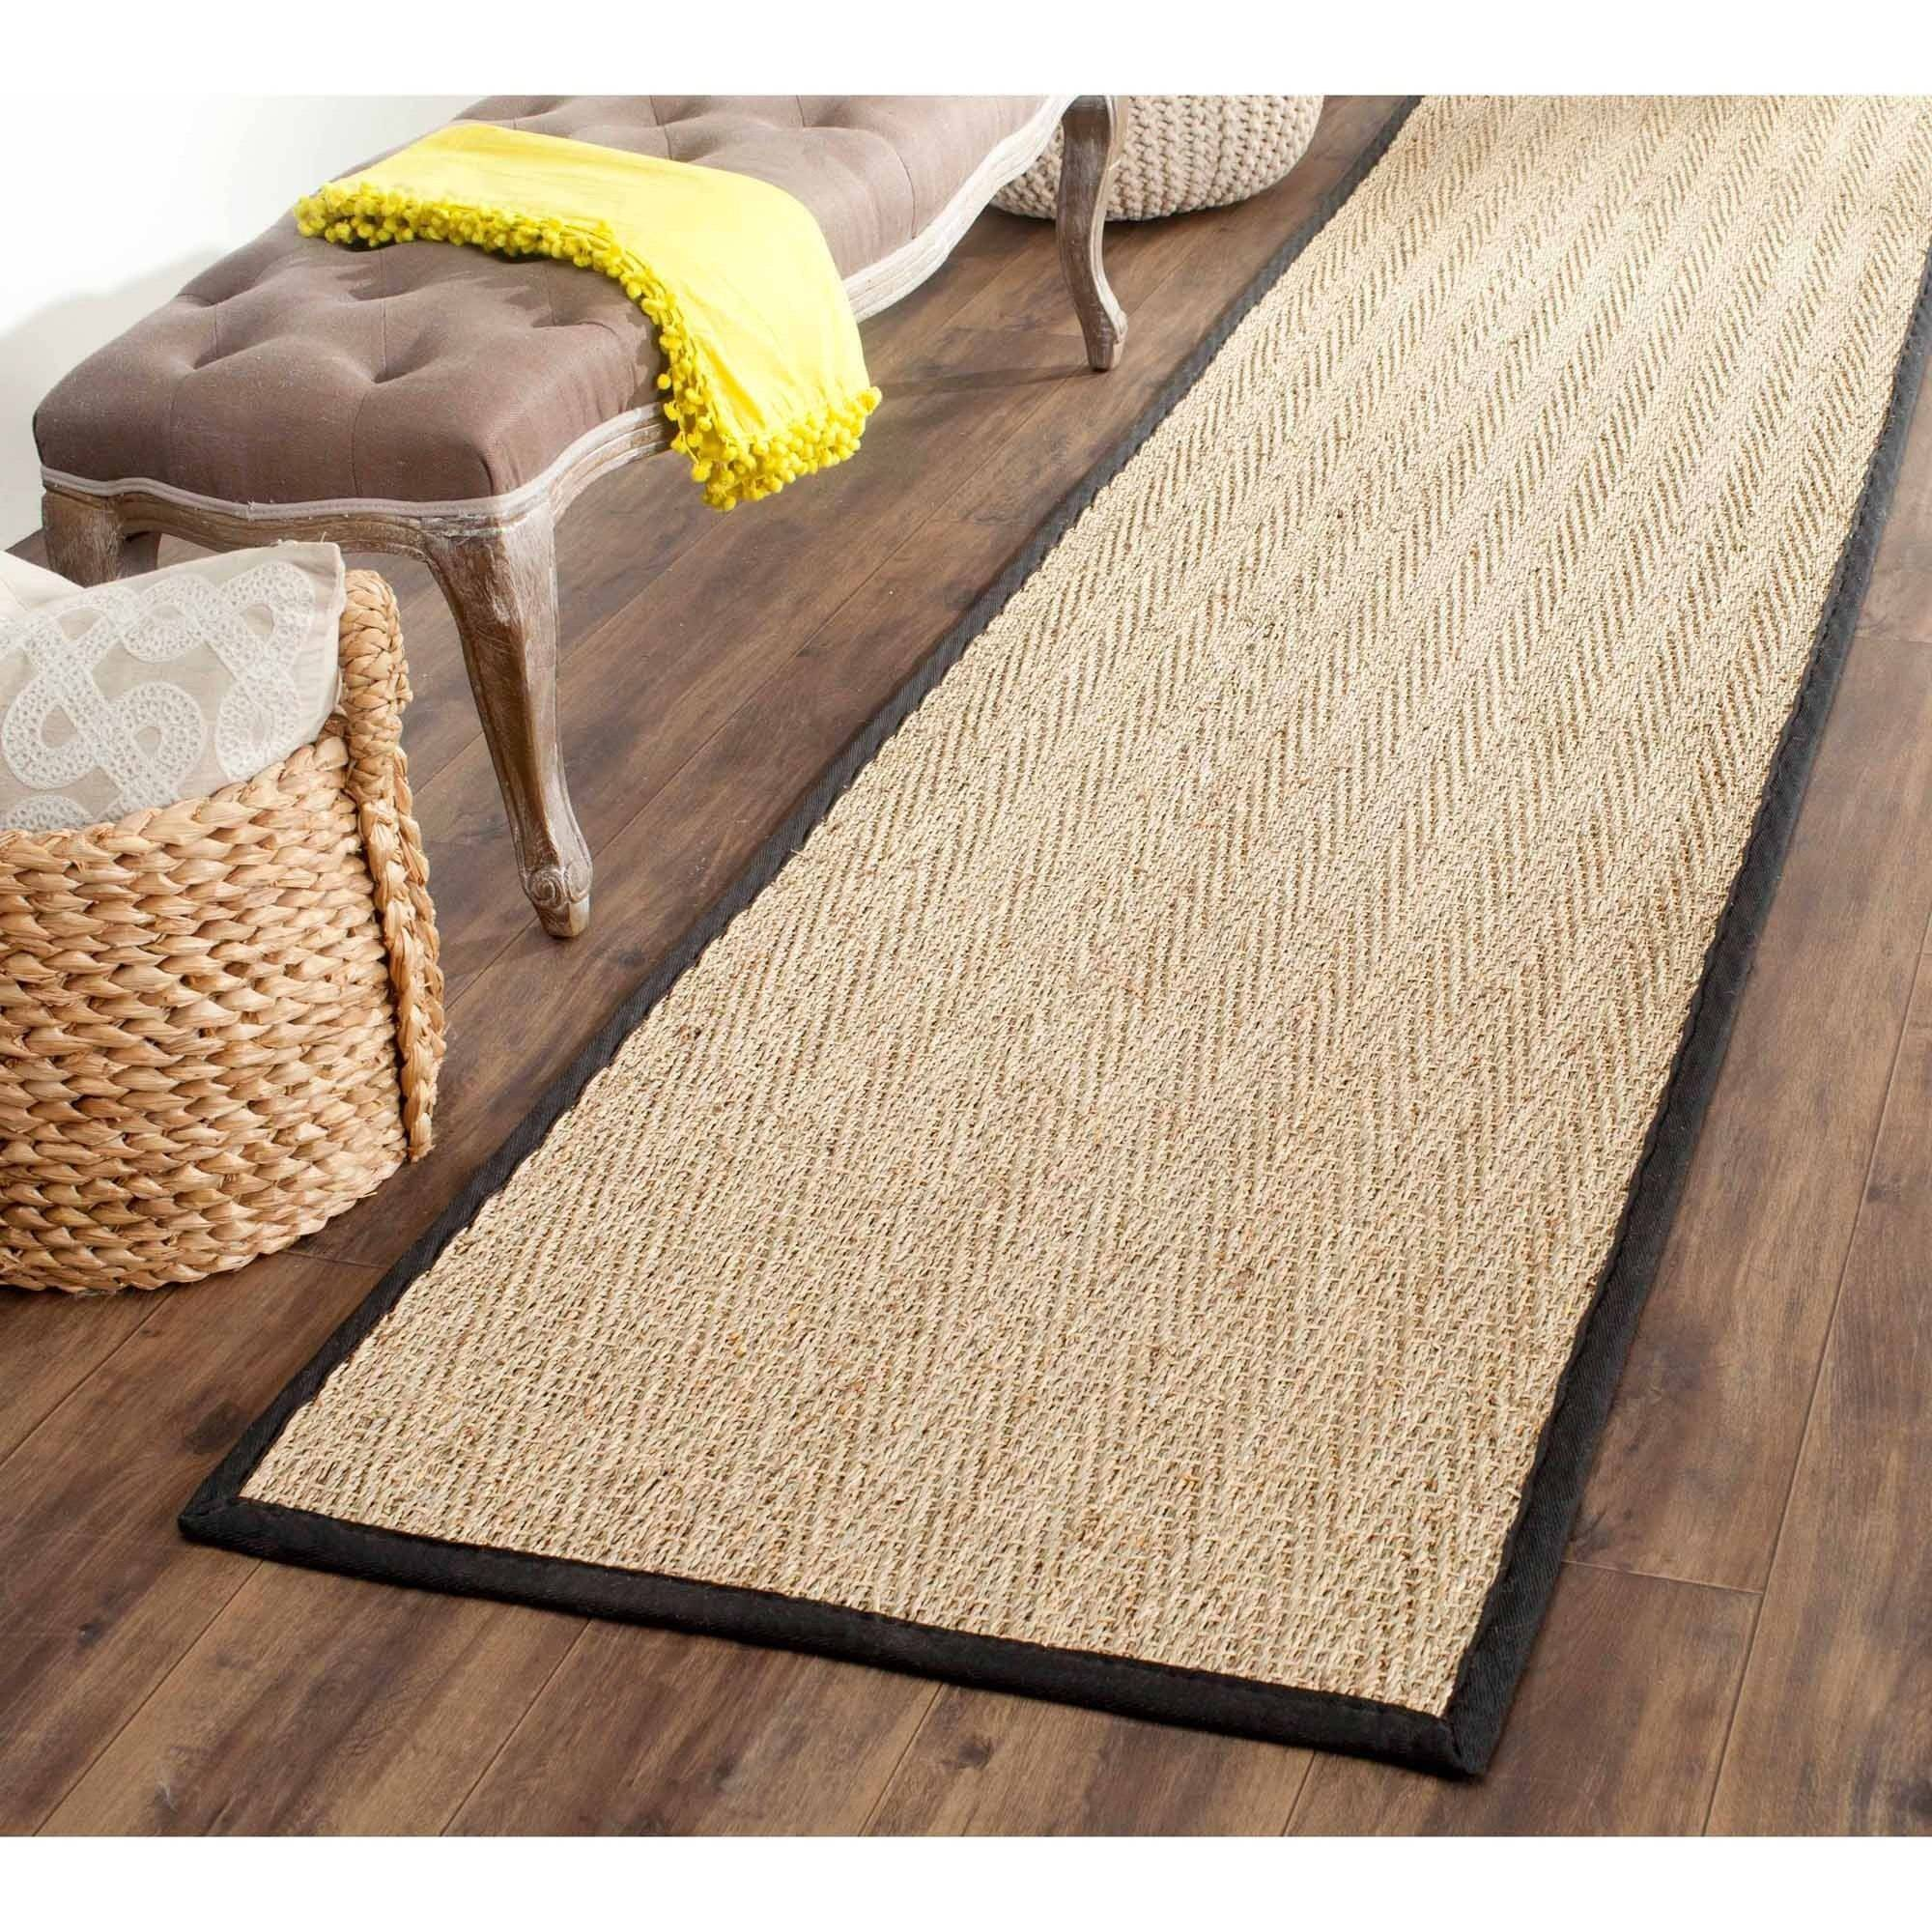 Safavieh Natural Fiber Maisy Border Area Rug or Runner by Safavieh